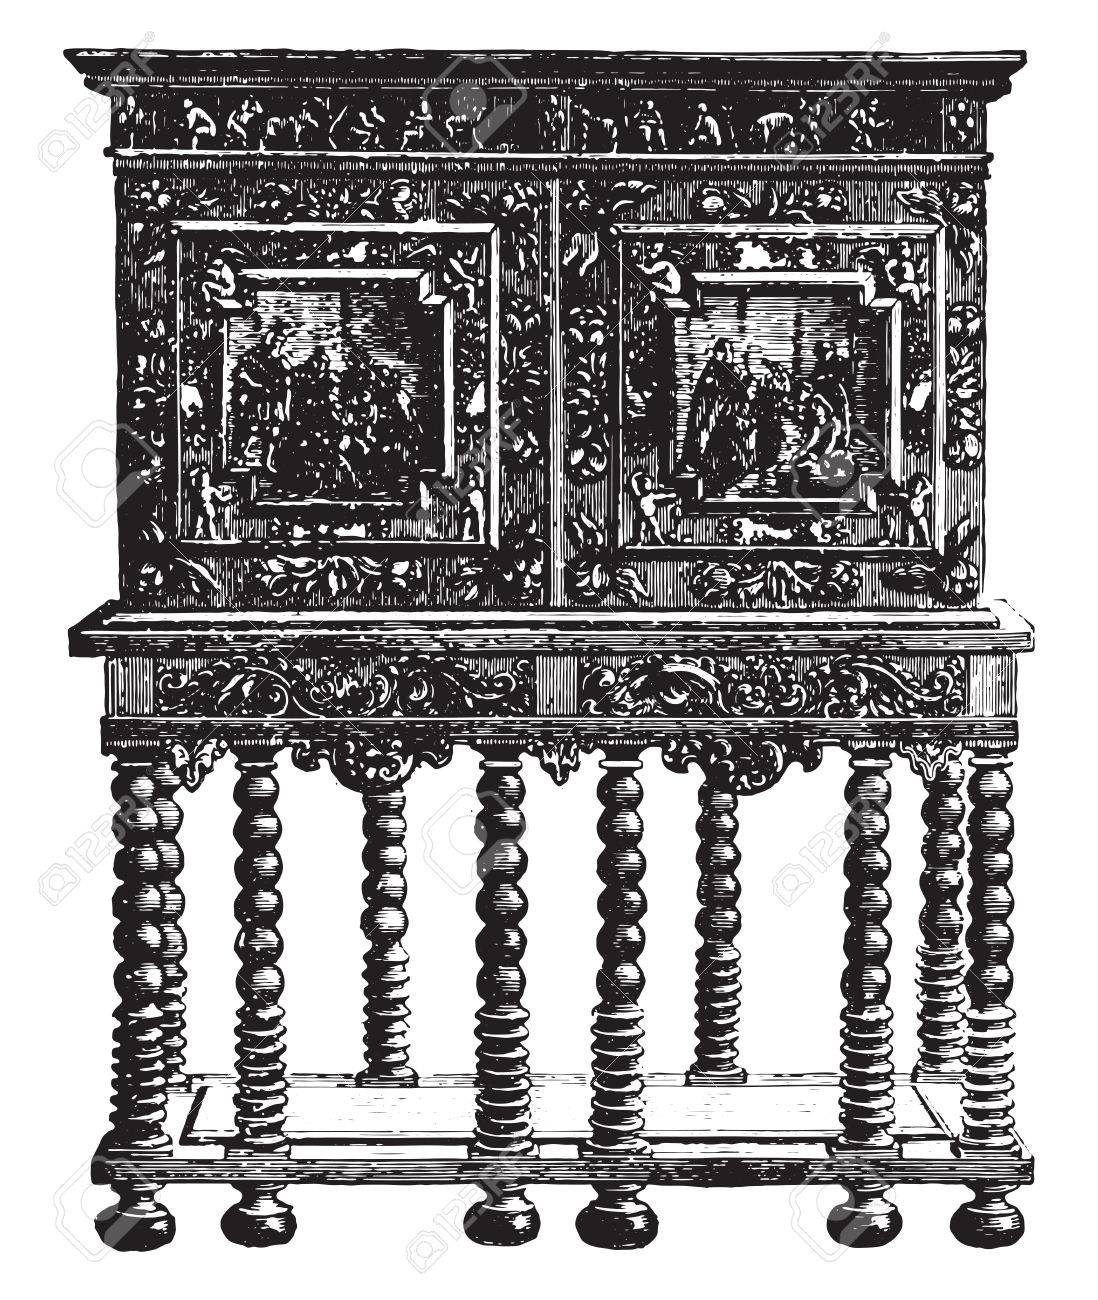 Merveilleux Office Furniture On Credence Table Ebony Sixteenth Century (Hammer Museum  In Stockholm, Vintage Engraved